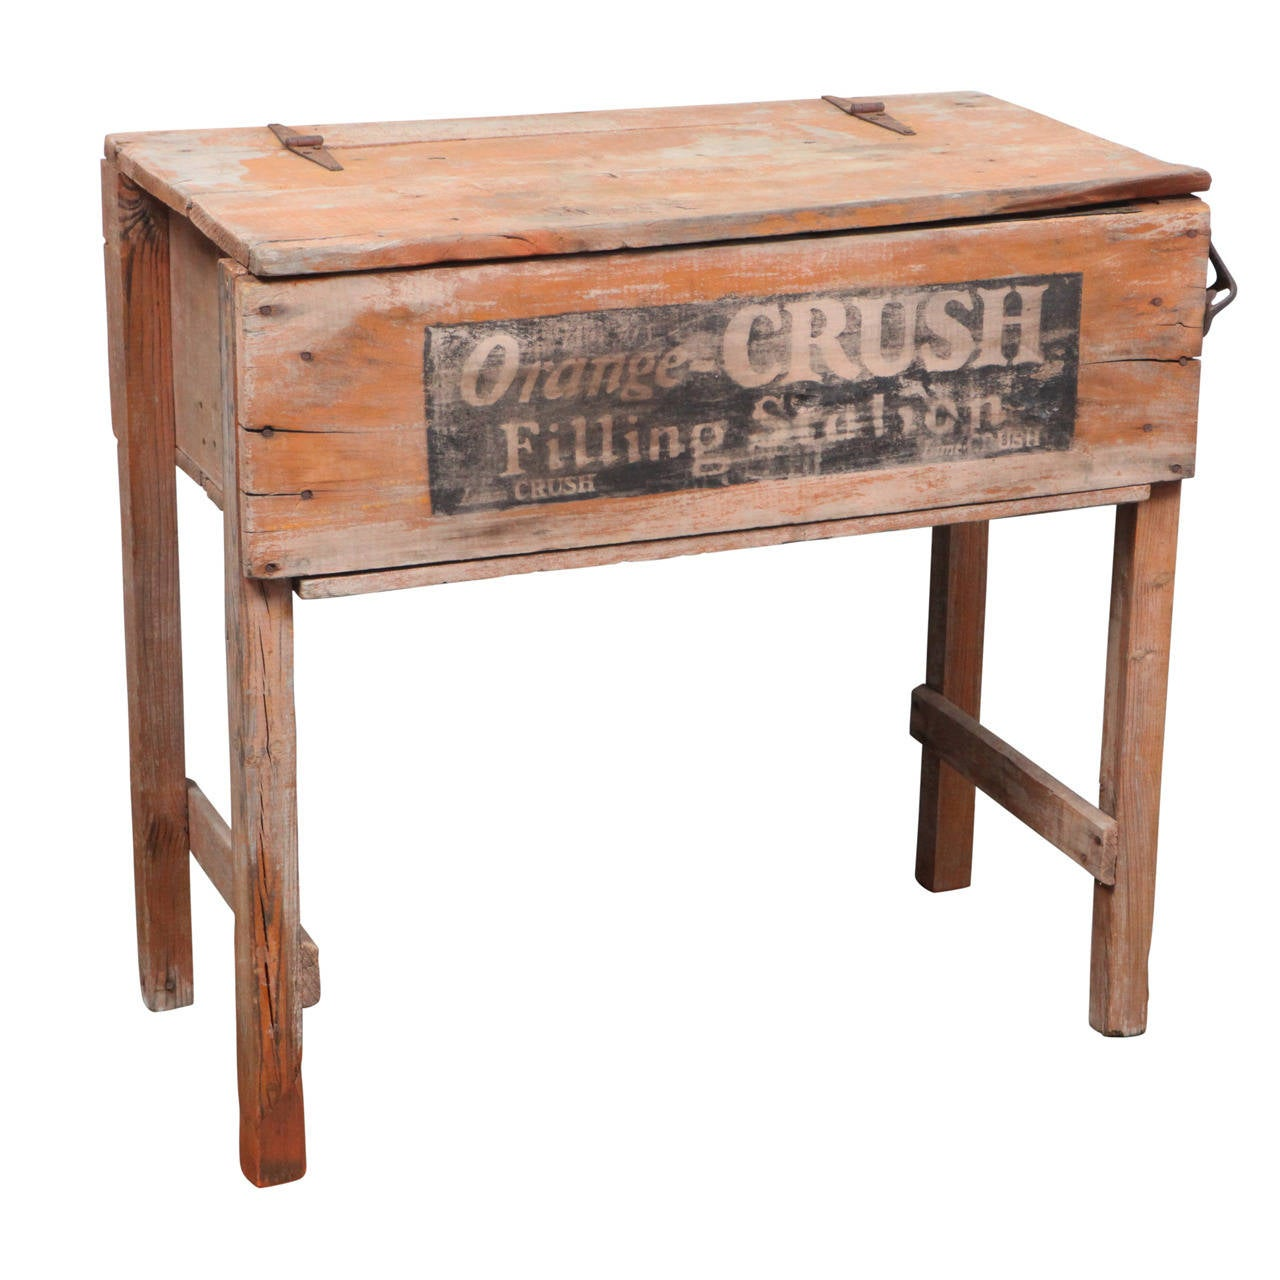 Early 20th c country store orange crush cooler at 1stdibs for Furniture and more store